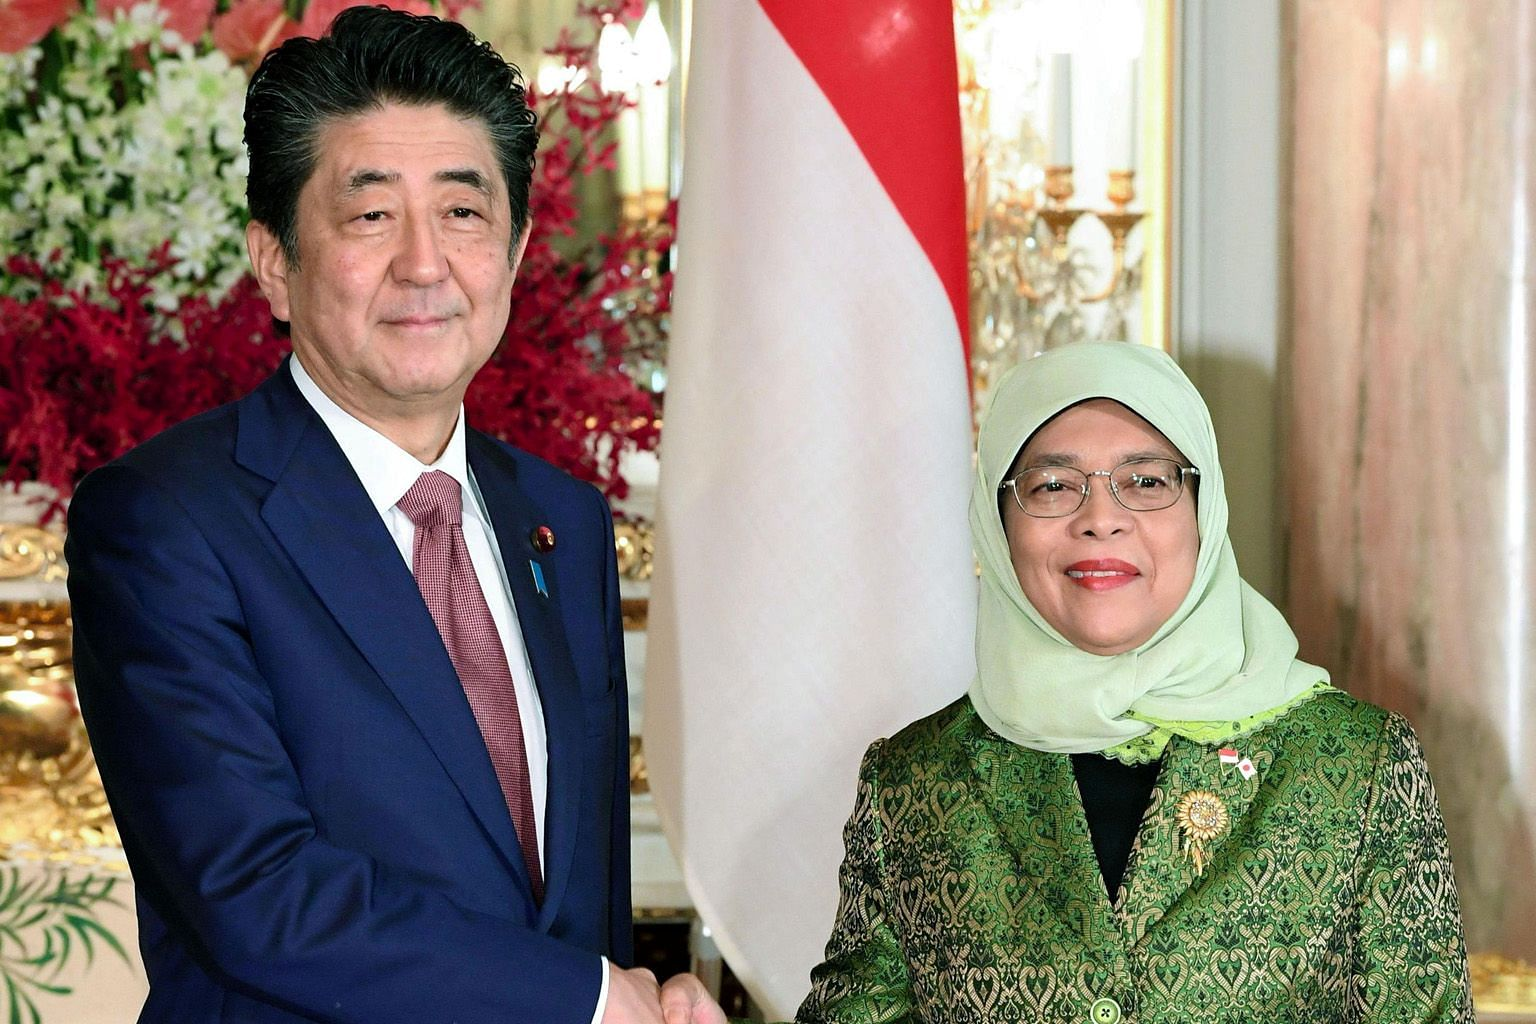 President Halimah with Japanese Prime Minister Shinzo Abe at the Akasaka State Guest House in Tokyo yesterday. Madam Halimah was among the heads of state and royalty from about 180 countries who attended Emperor Naruhito's coronation on Tuesday. PHOT